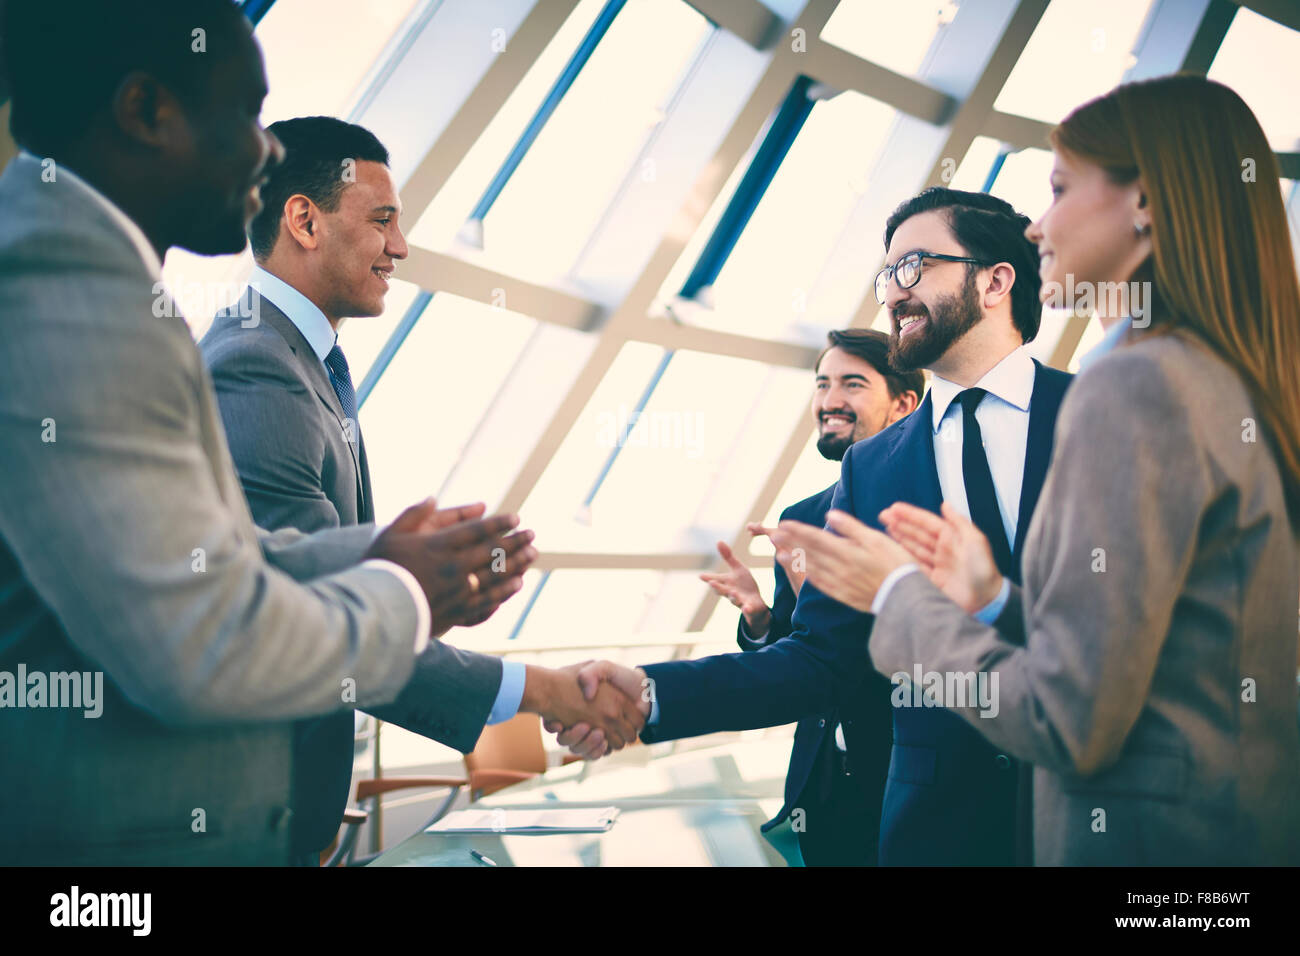 Business partners greeting each other after signing contract - Stock Image